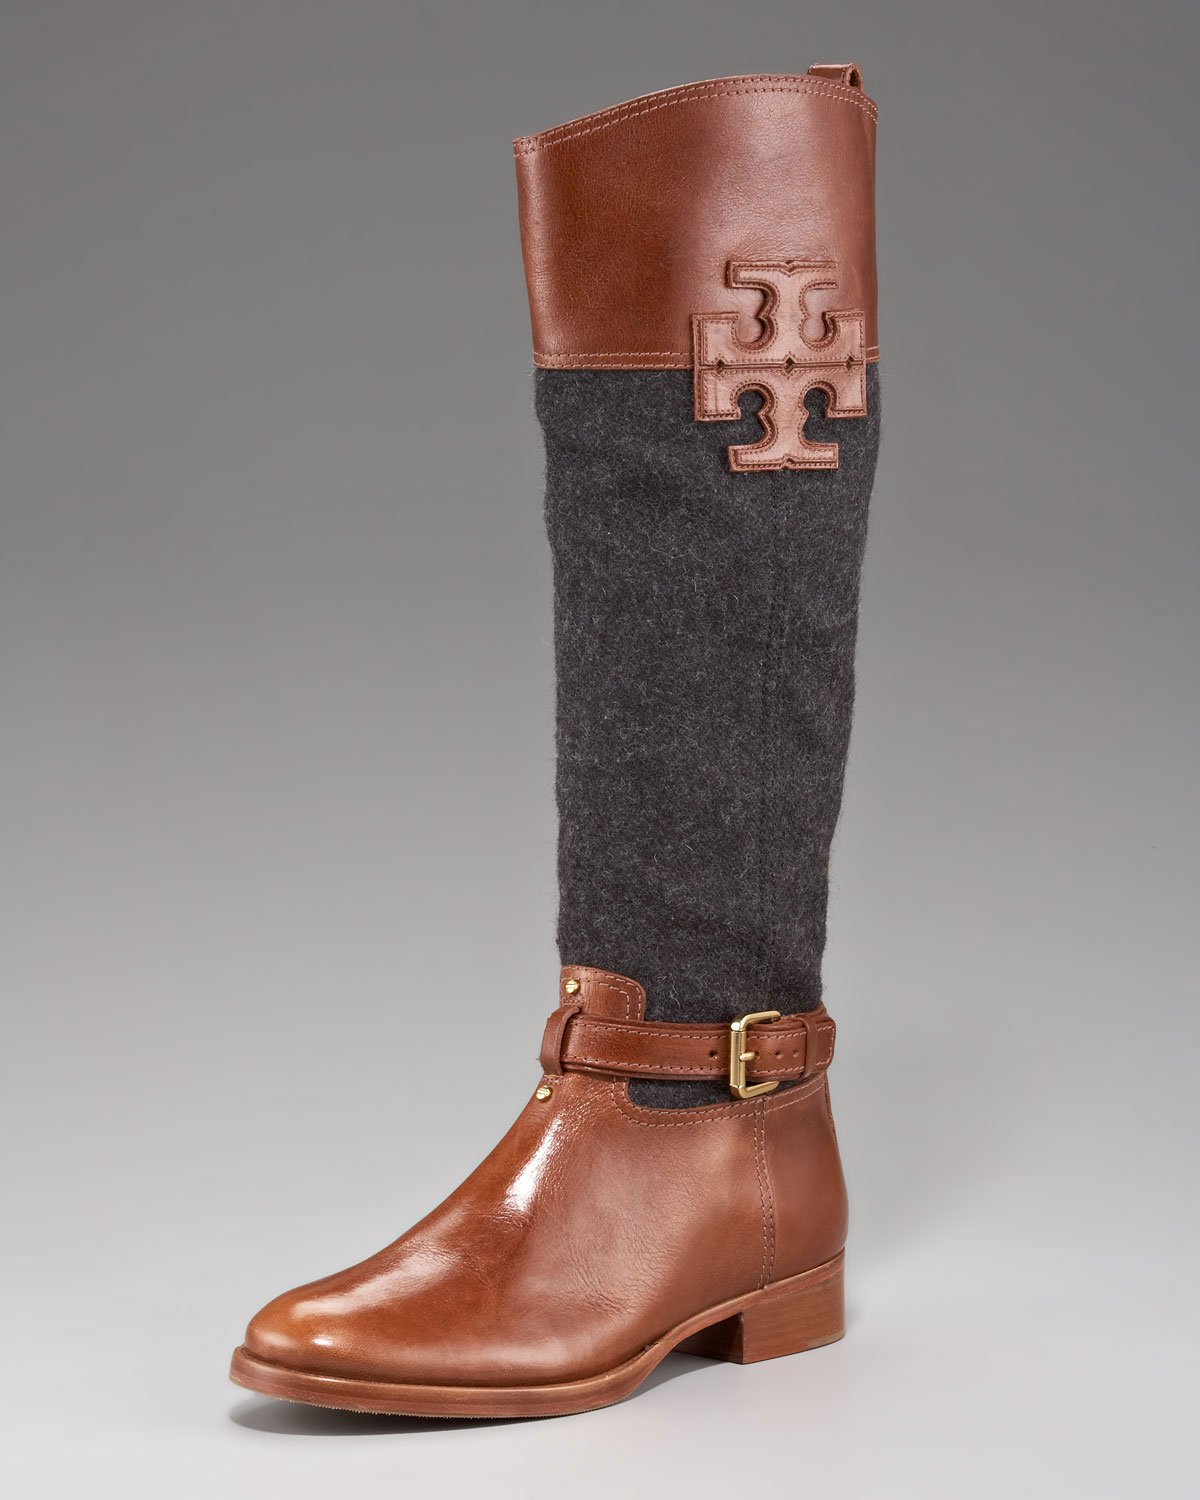 Tory burch Blaire Leather/flannel Riding Boot in Brown | Lyst